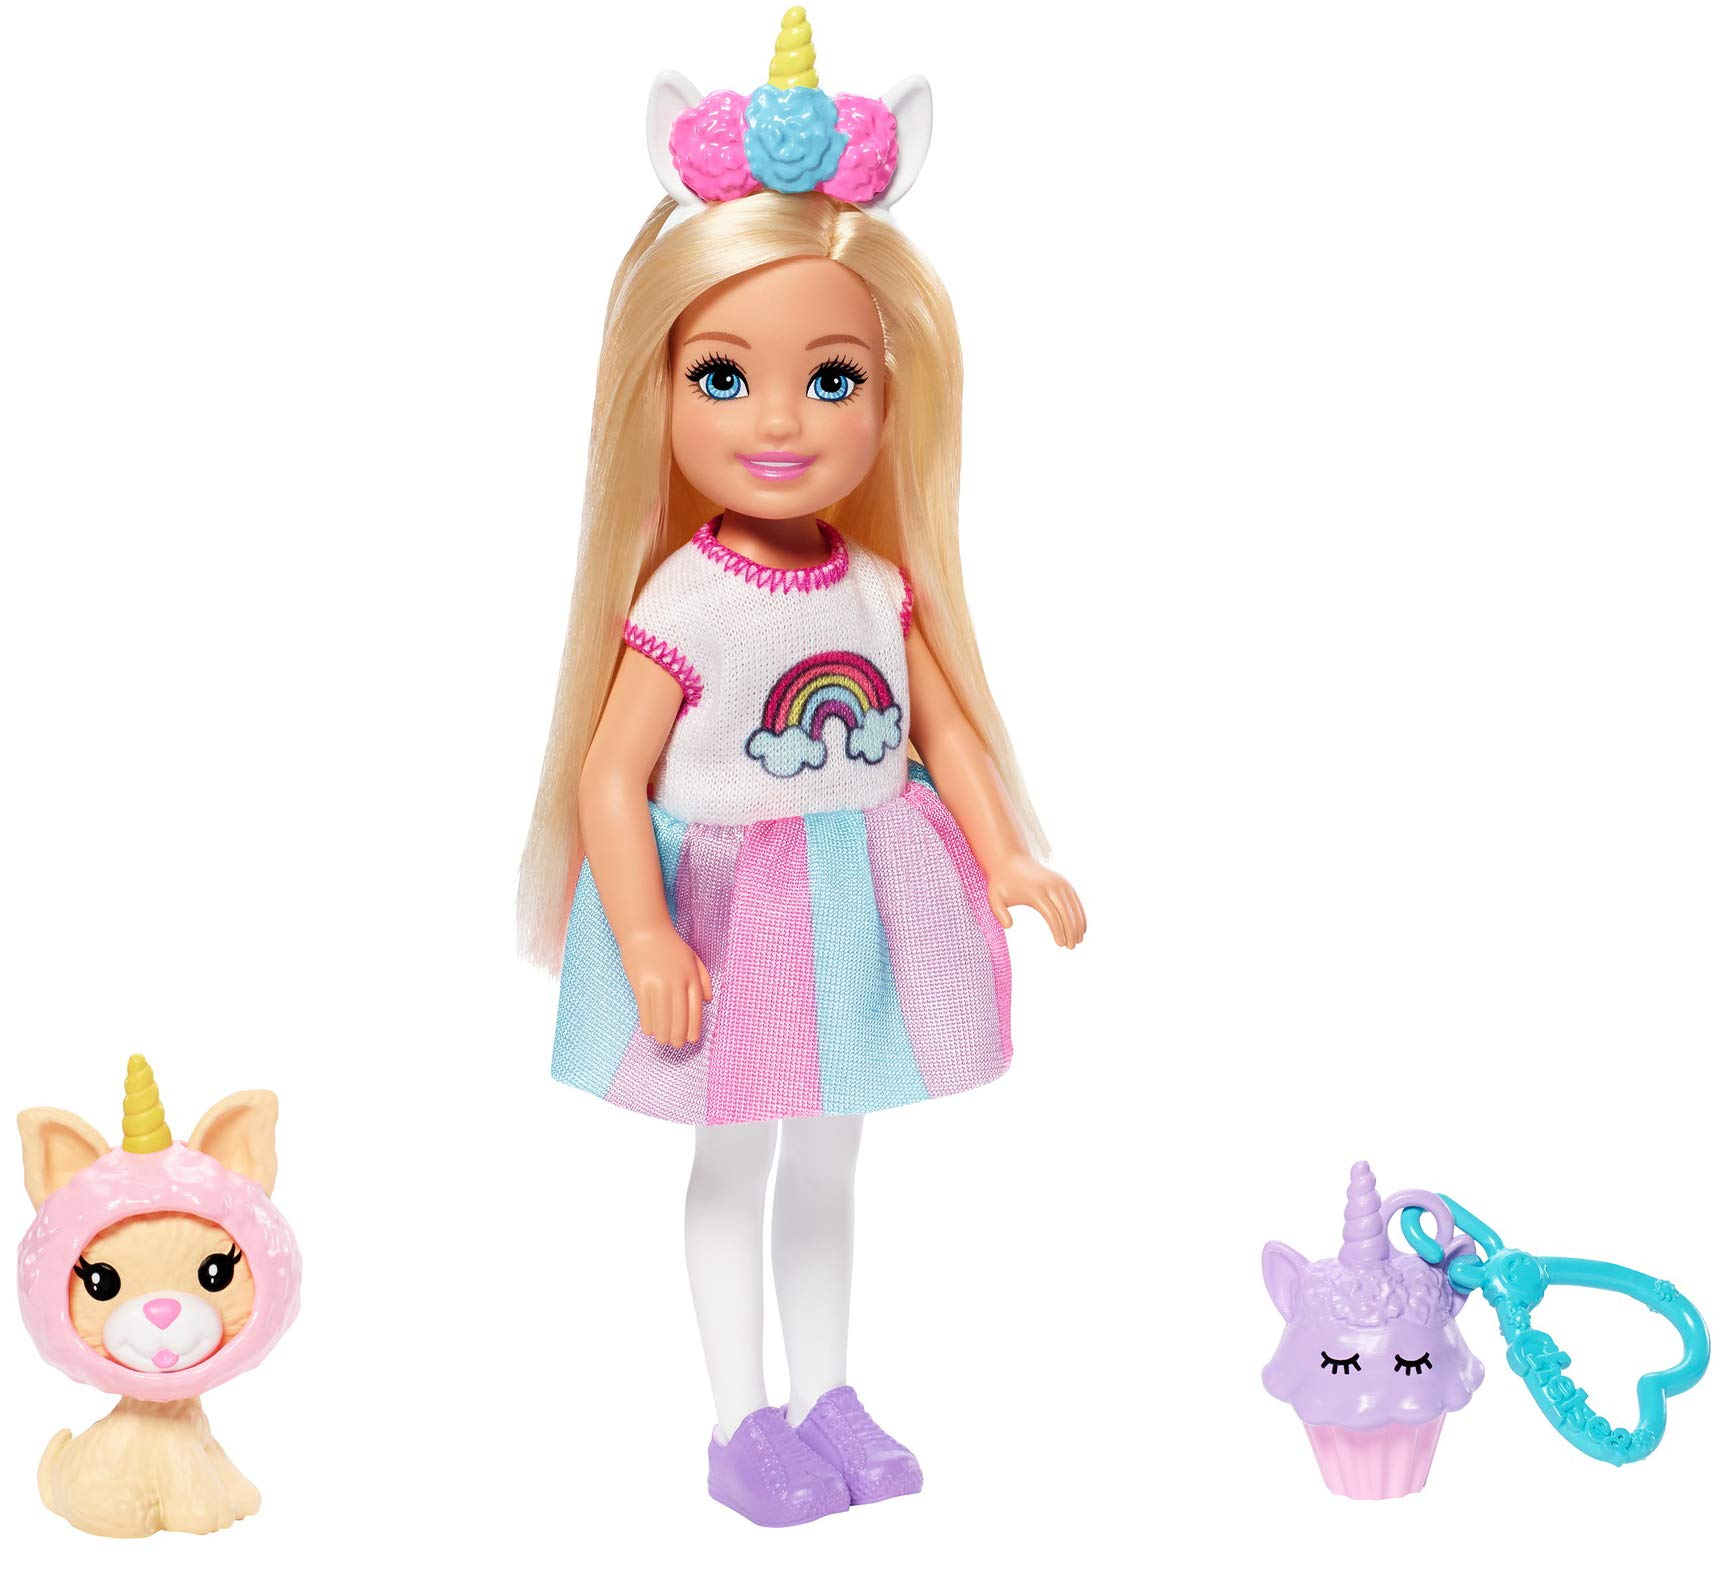 Barbie Club Chelsea Dress-Up Doll in Unicorn Costume with Accessories, 6-Inch Blonde, for 3 to 7 Year Olds